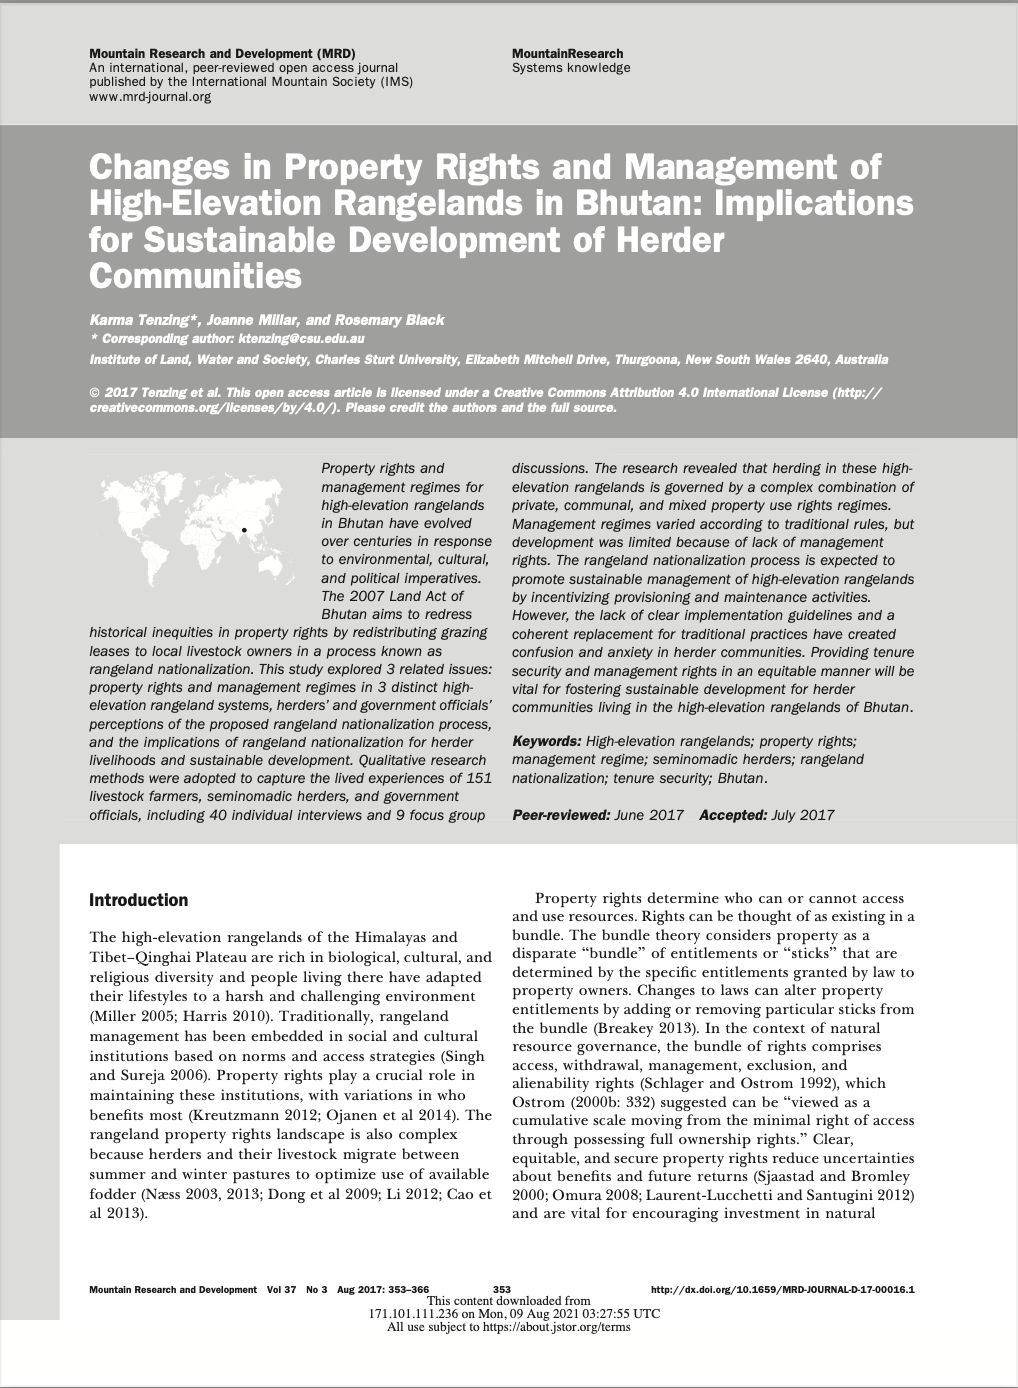 Changes in Property Rights and Management of High-Elevation Rangelands in Bhutan: Implications for S